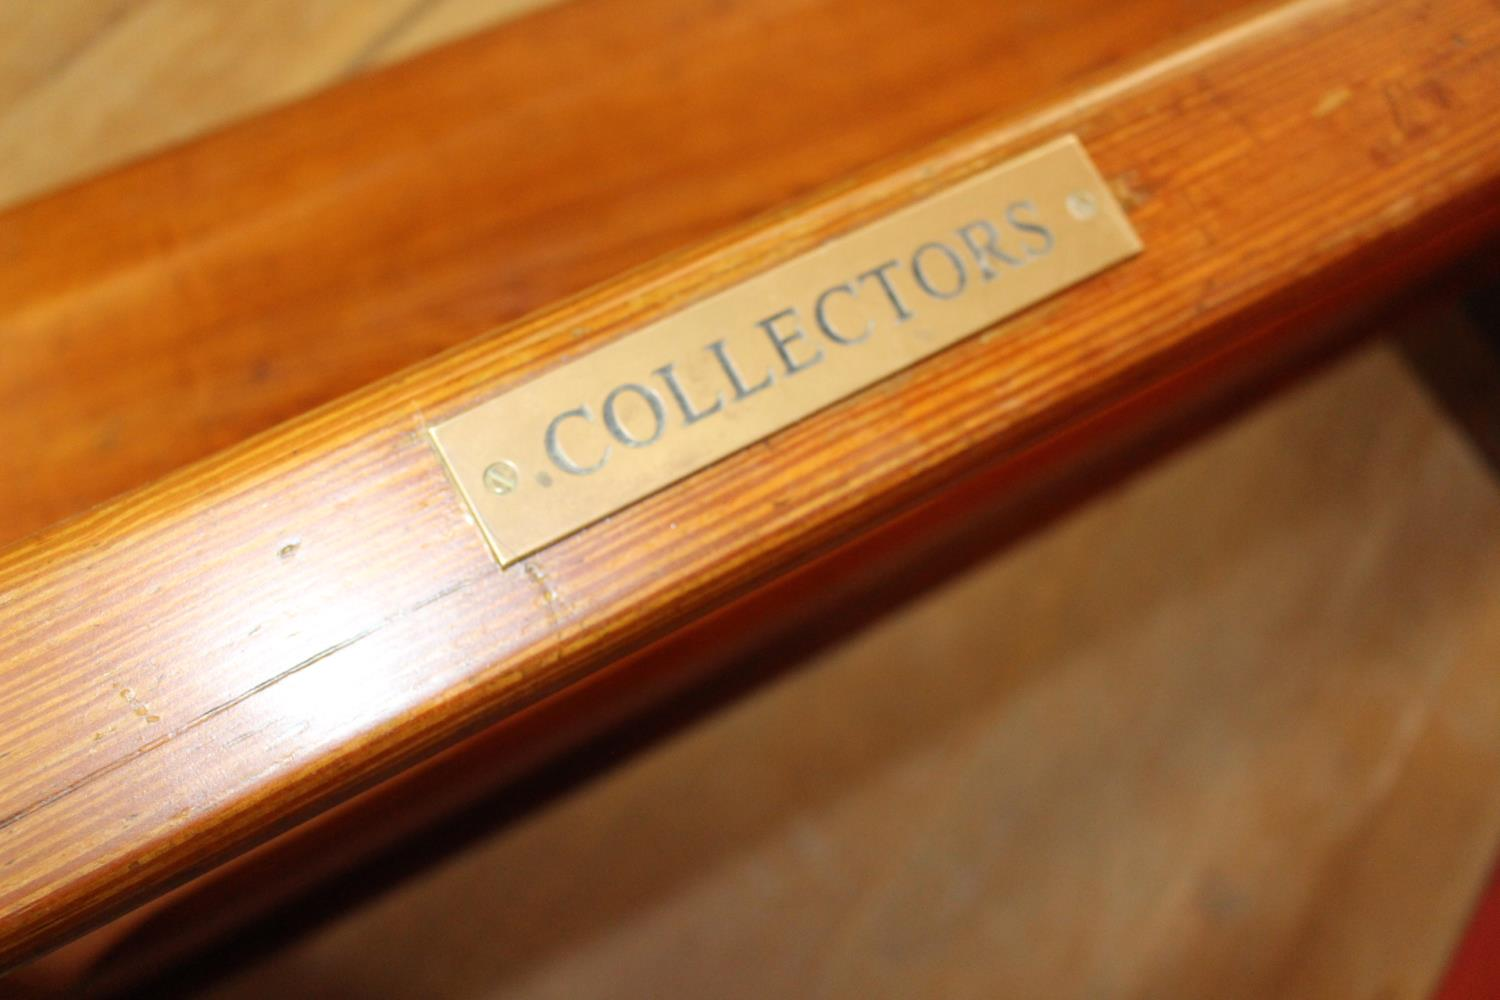 19th C. pitch pine pew - Image 2 of 2